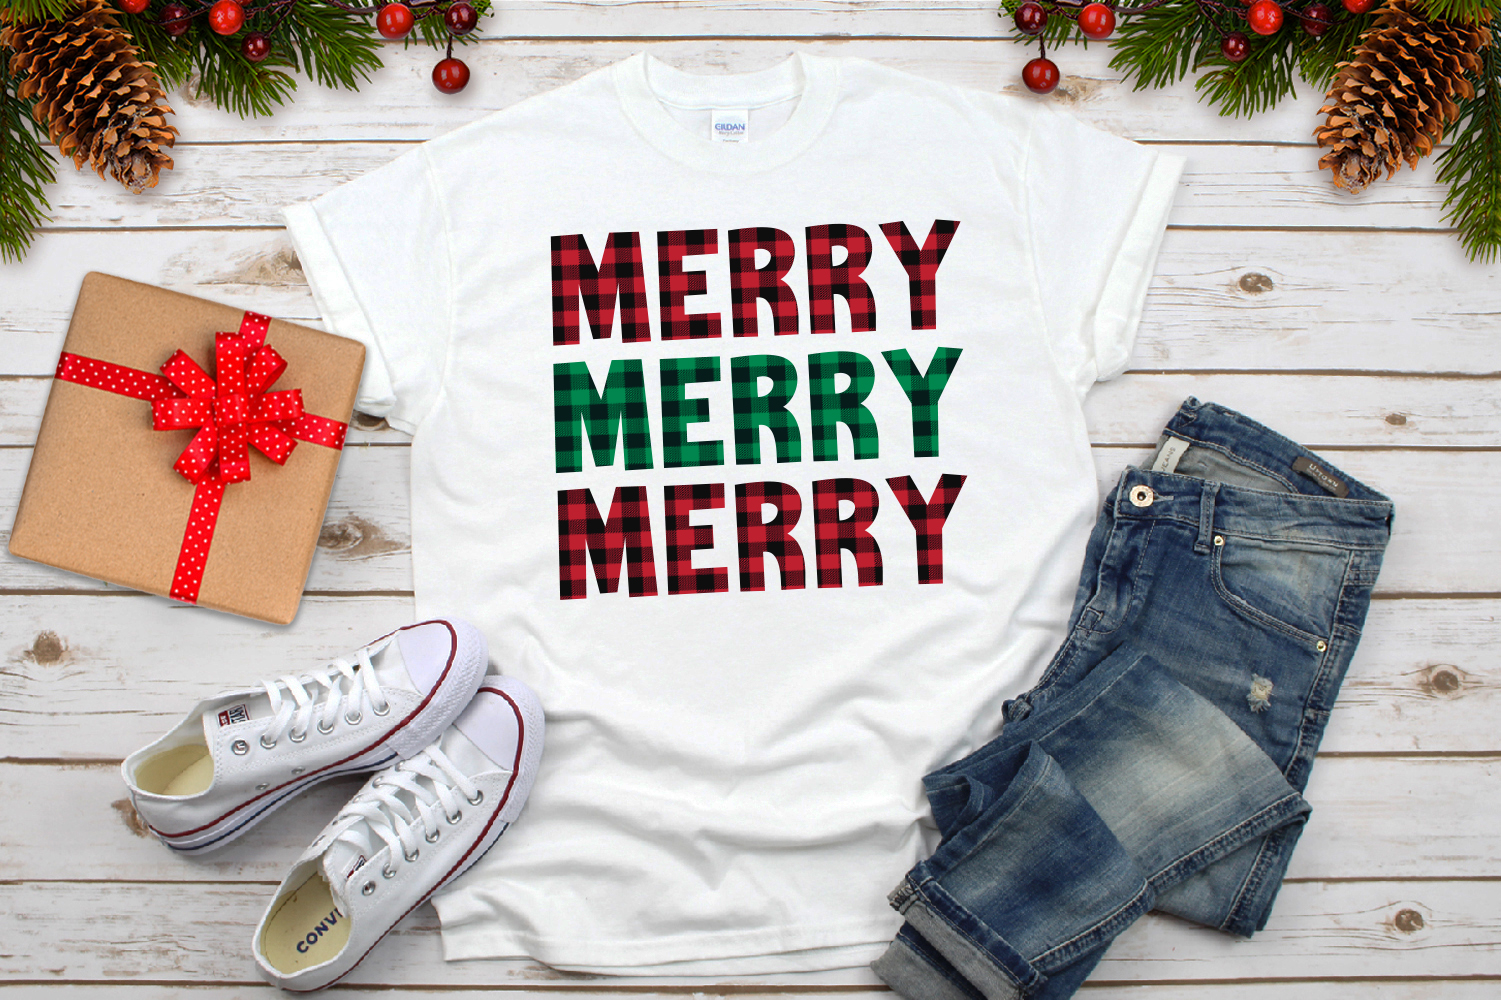 Merry Merry Merry Christmas Plaid Svg example image 3